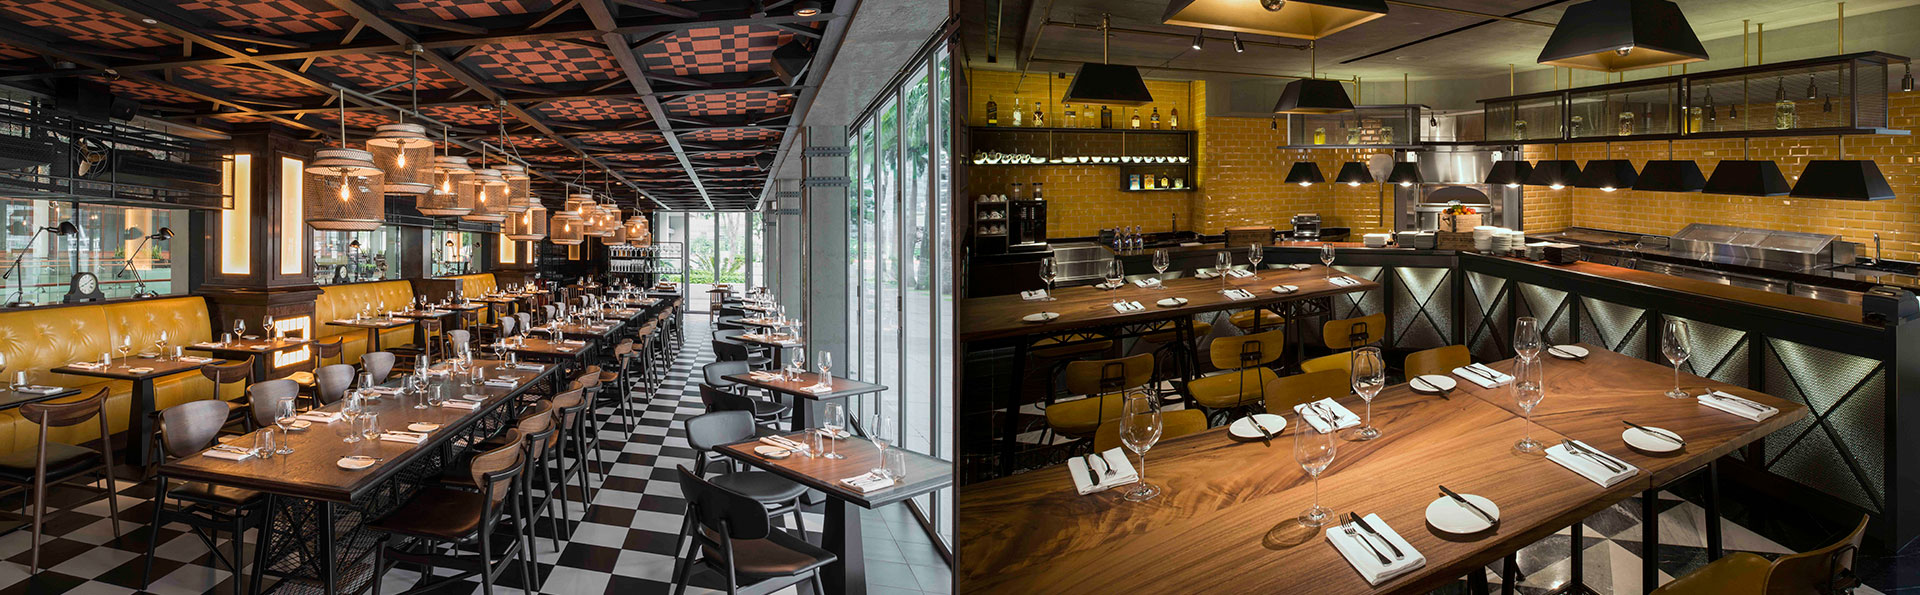 Wine Bottle Inspired Restaurant in Singapore - The Tasting Room ...